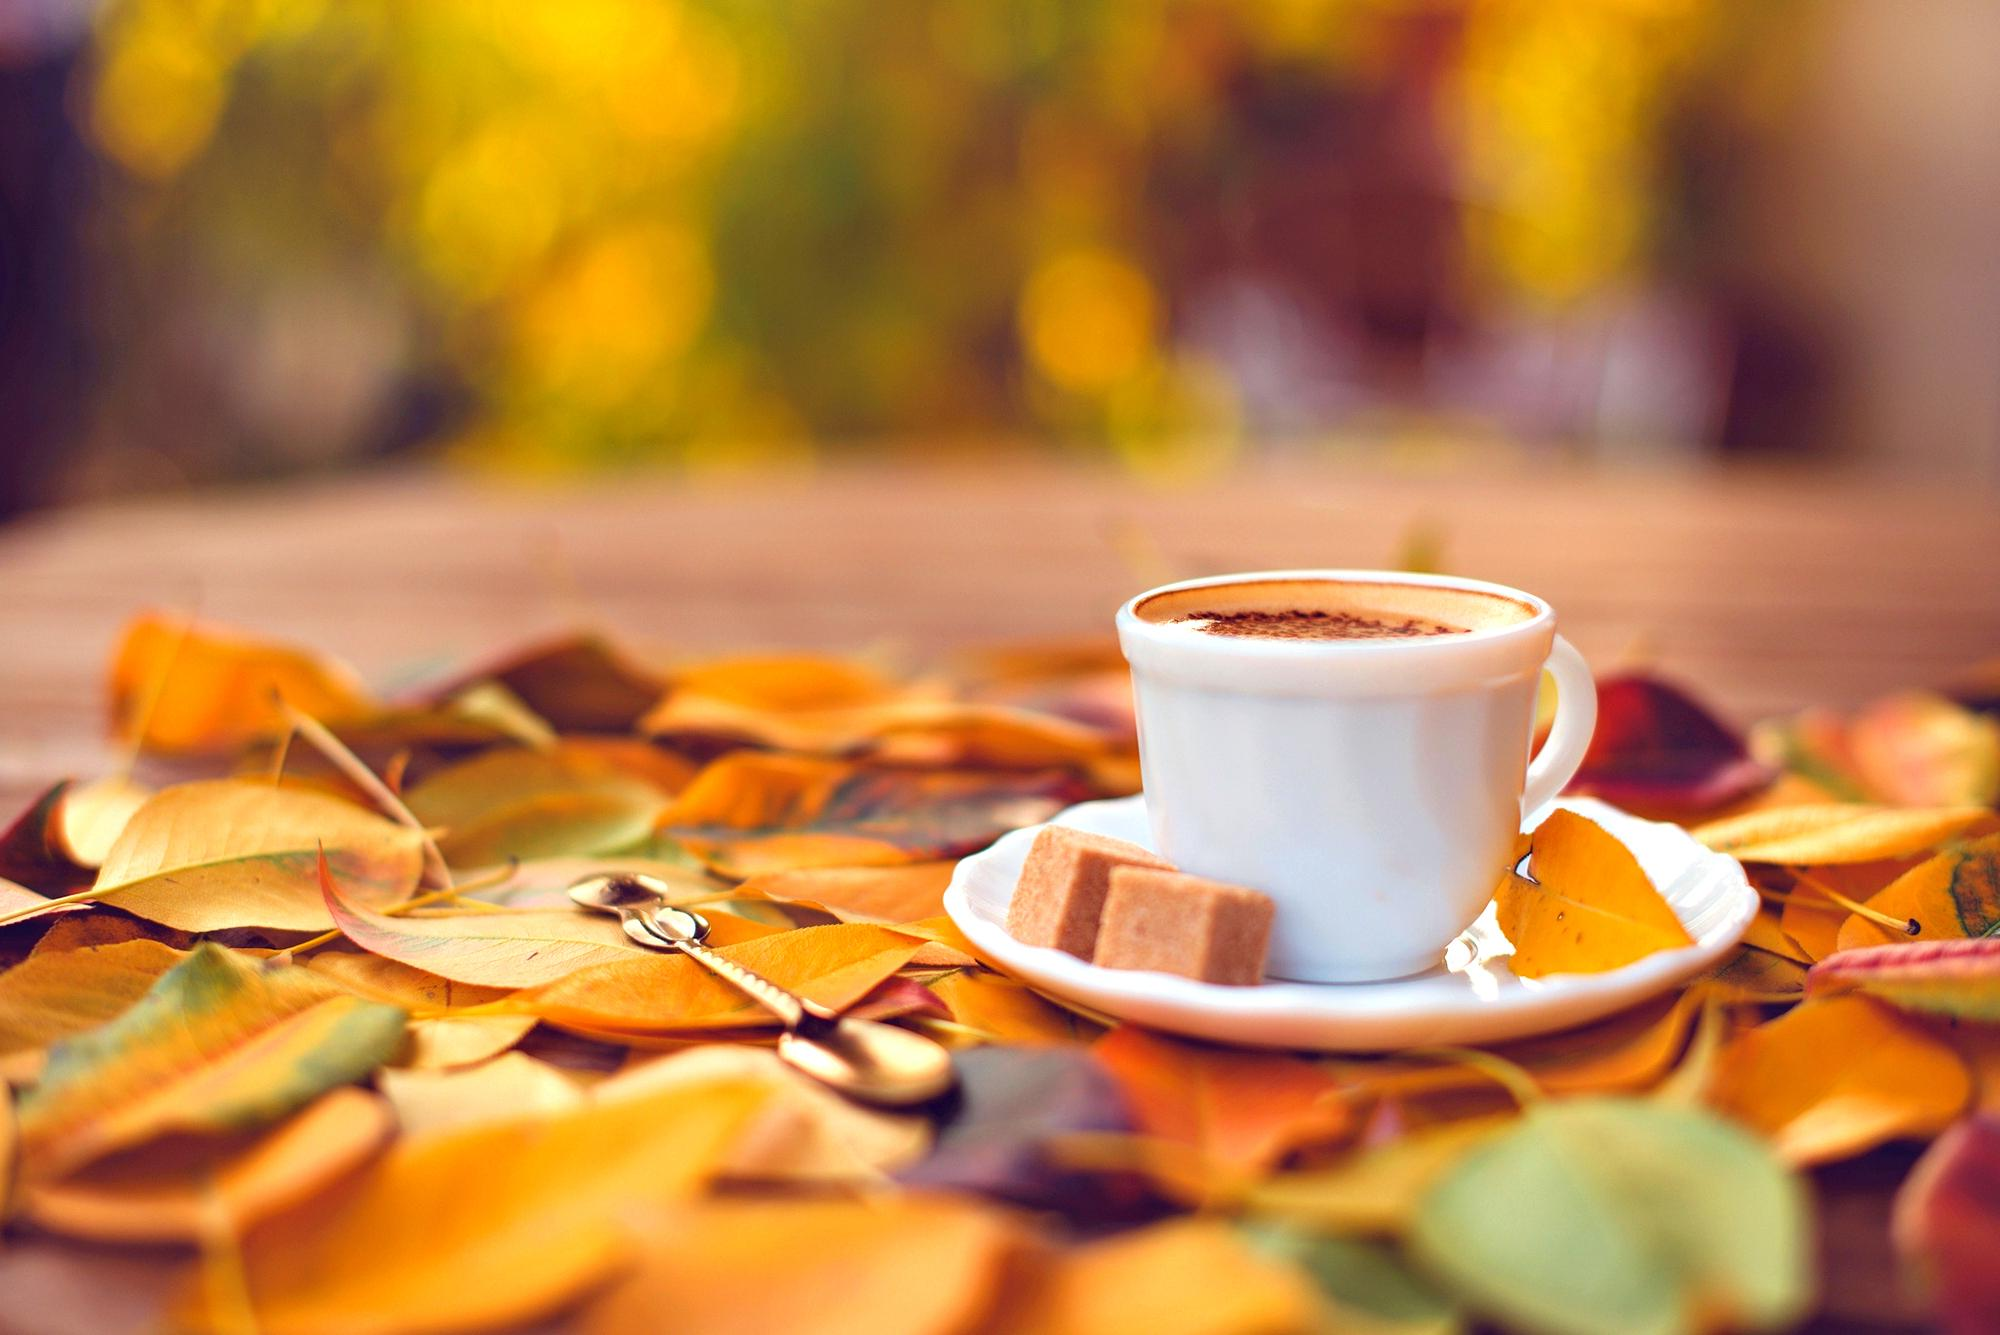 Falling Leaves Wallpaper For Iphone Sweet Coffee And An Autumn Carpet Hd Wallpaper